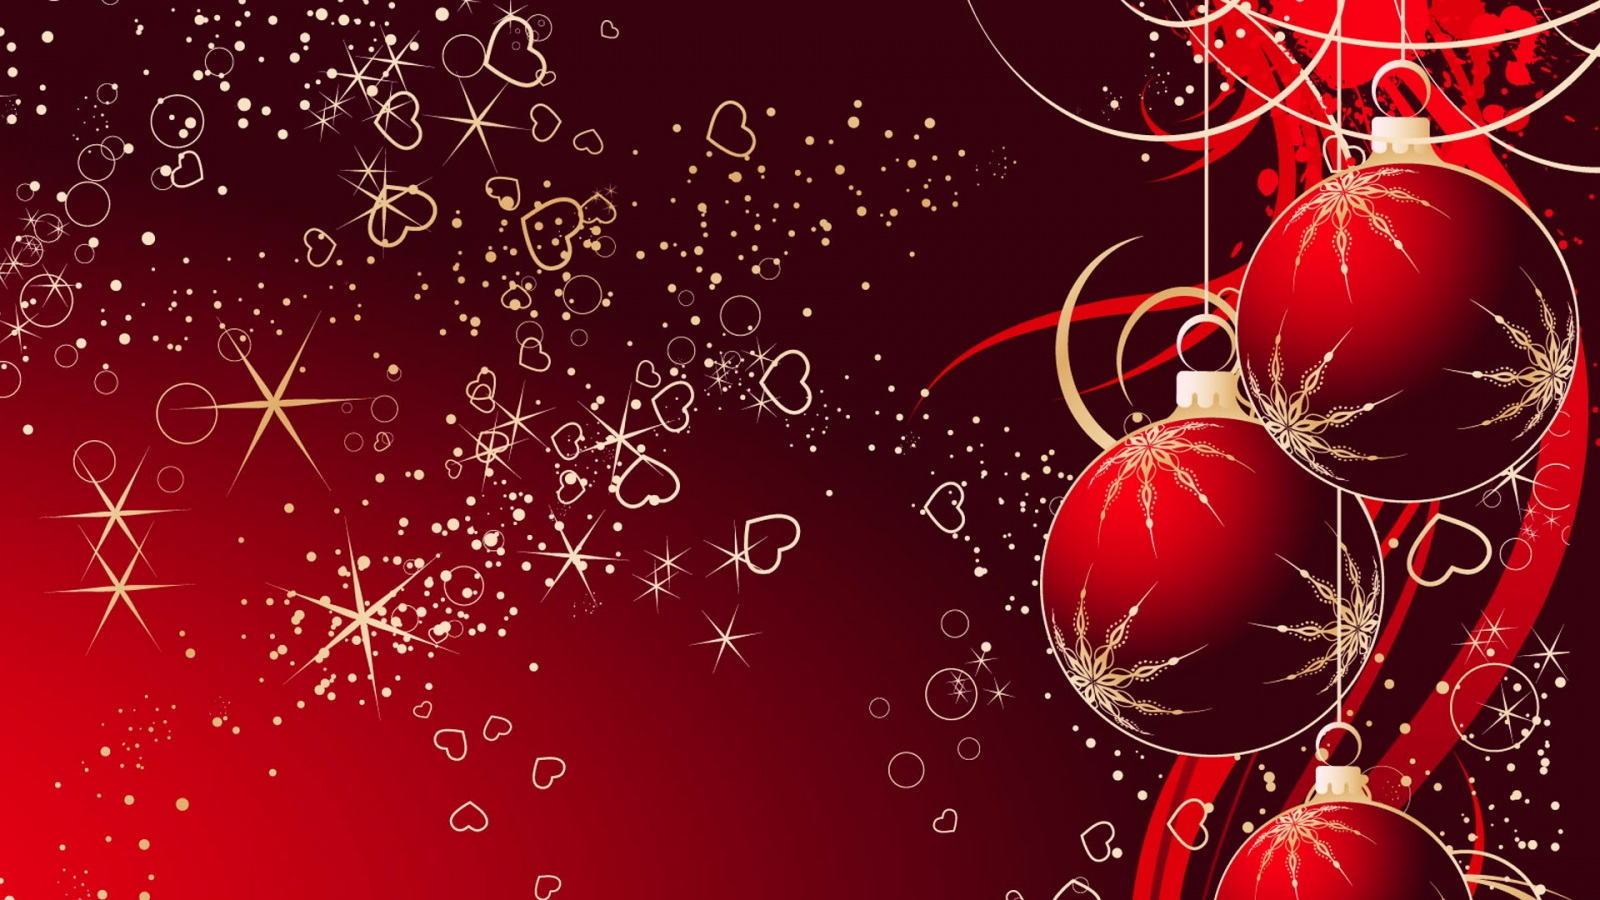 Christmas Wallpapers | Merry Christmas